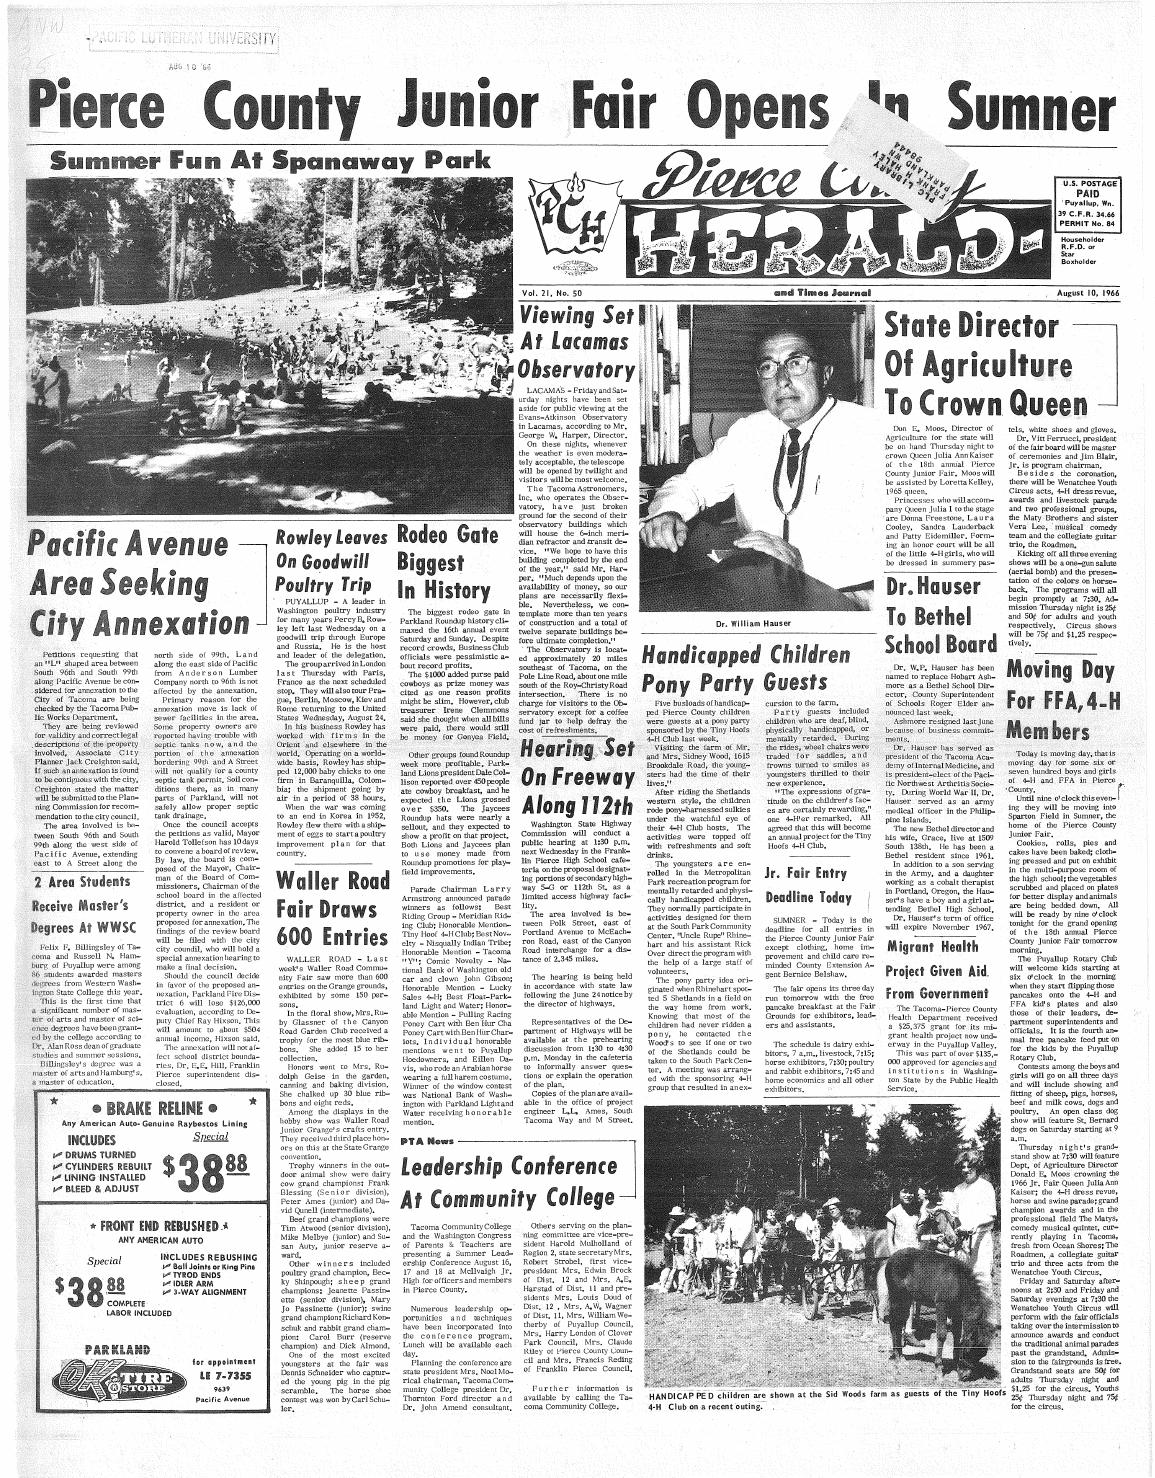 Pierce county herald v 21 no 50 aug 10, 1966 by Pacific Lutheran ...